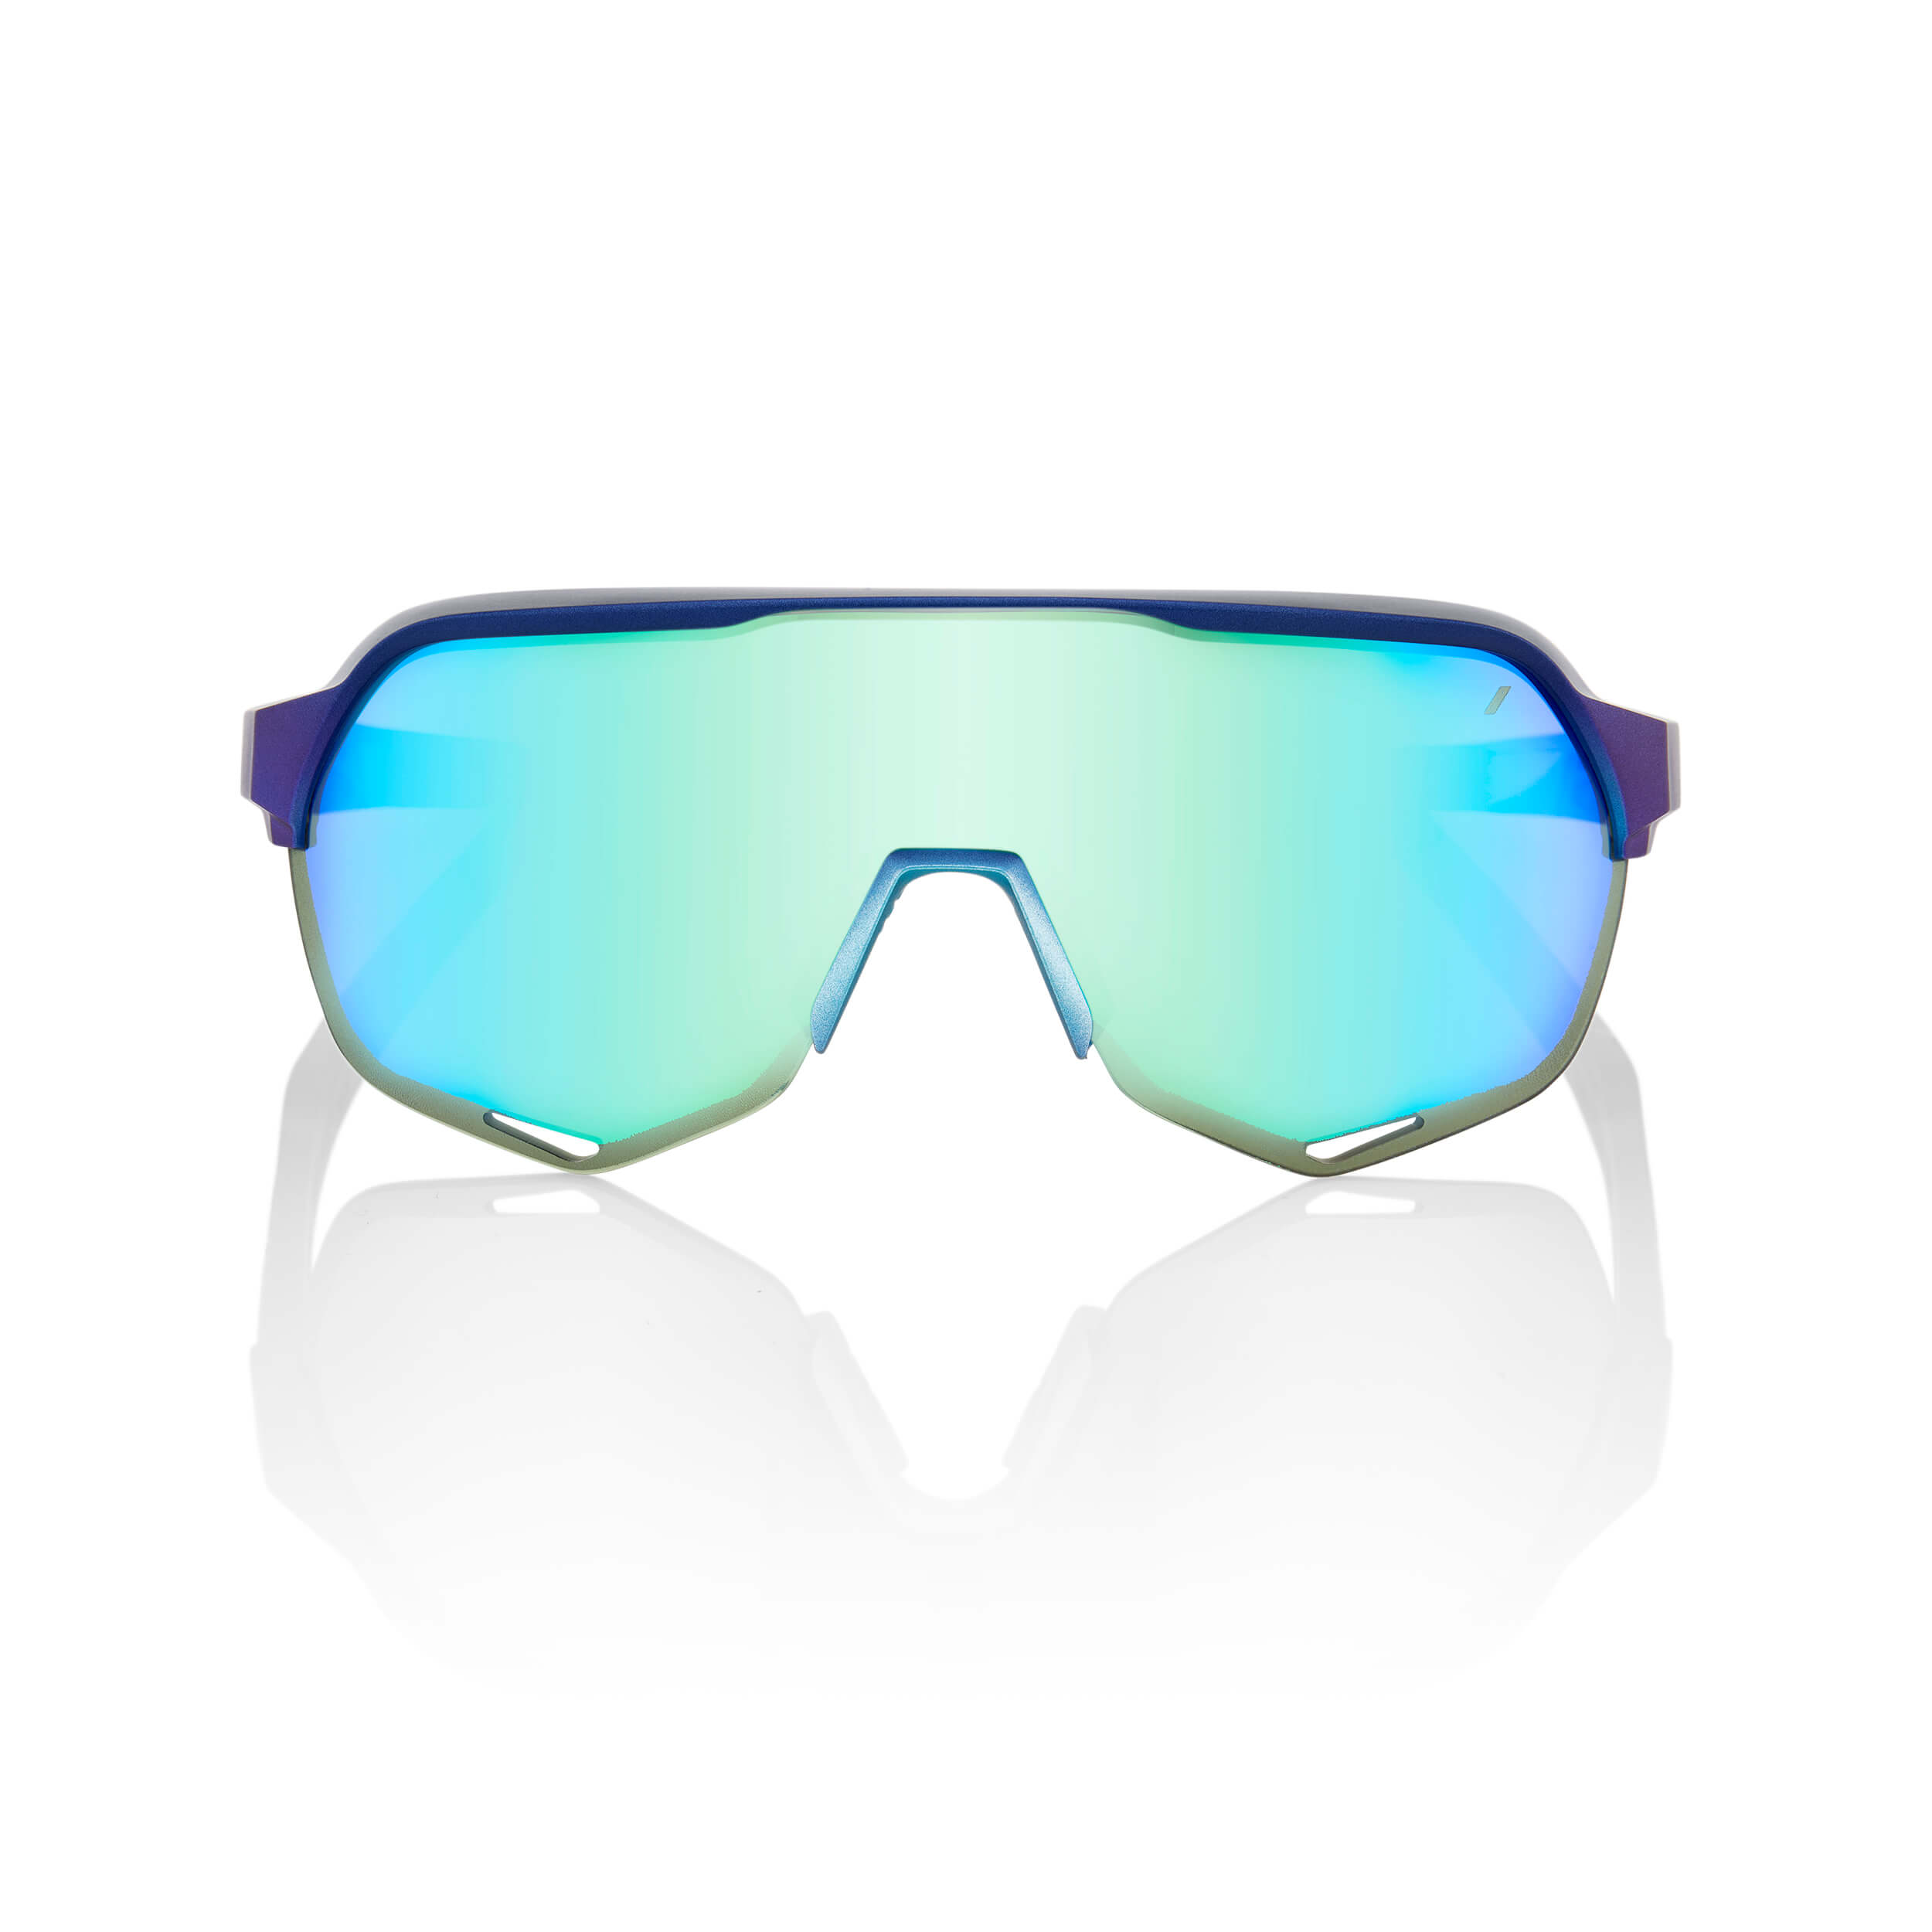 S2 – Matte Metallic Into the Fade – Blue Topaz Multilayer Mirror Lens